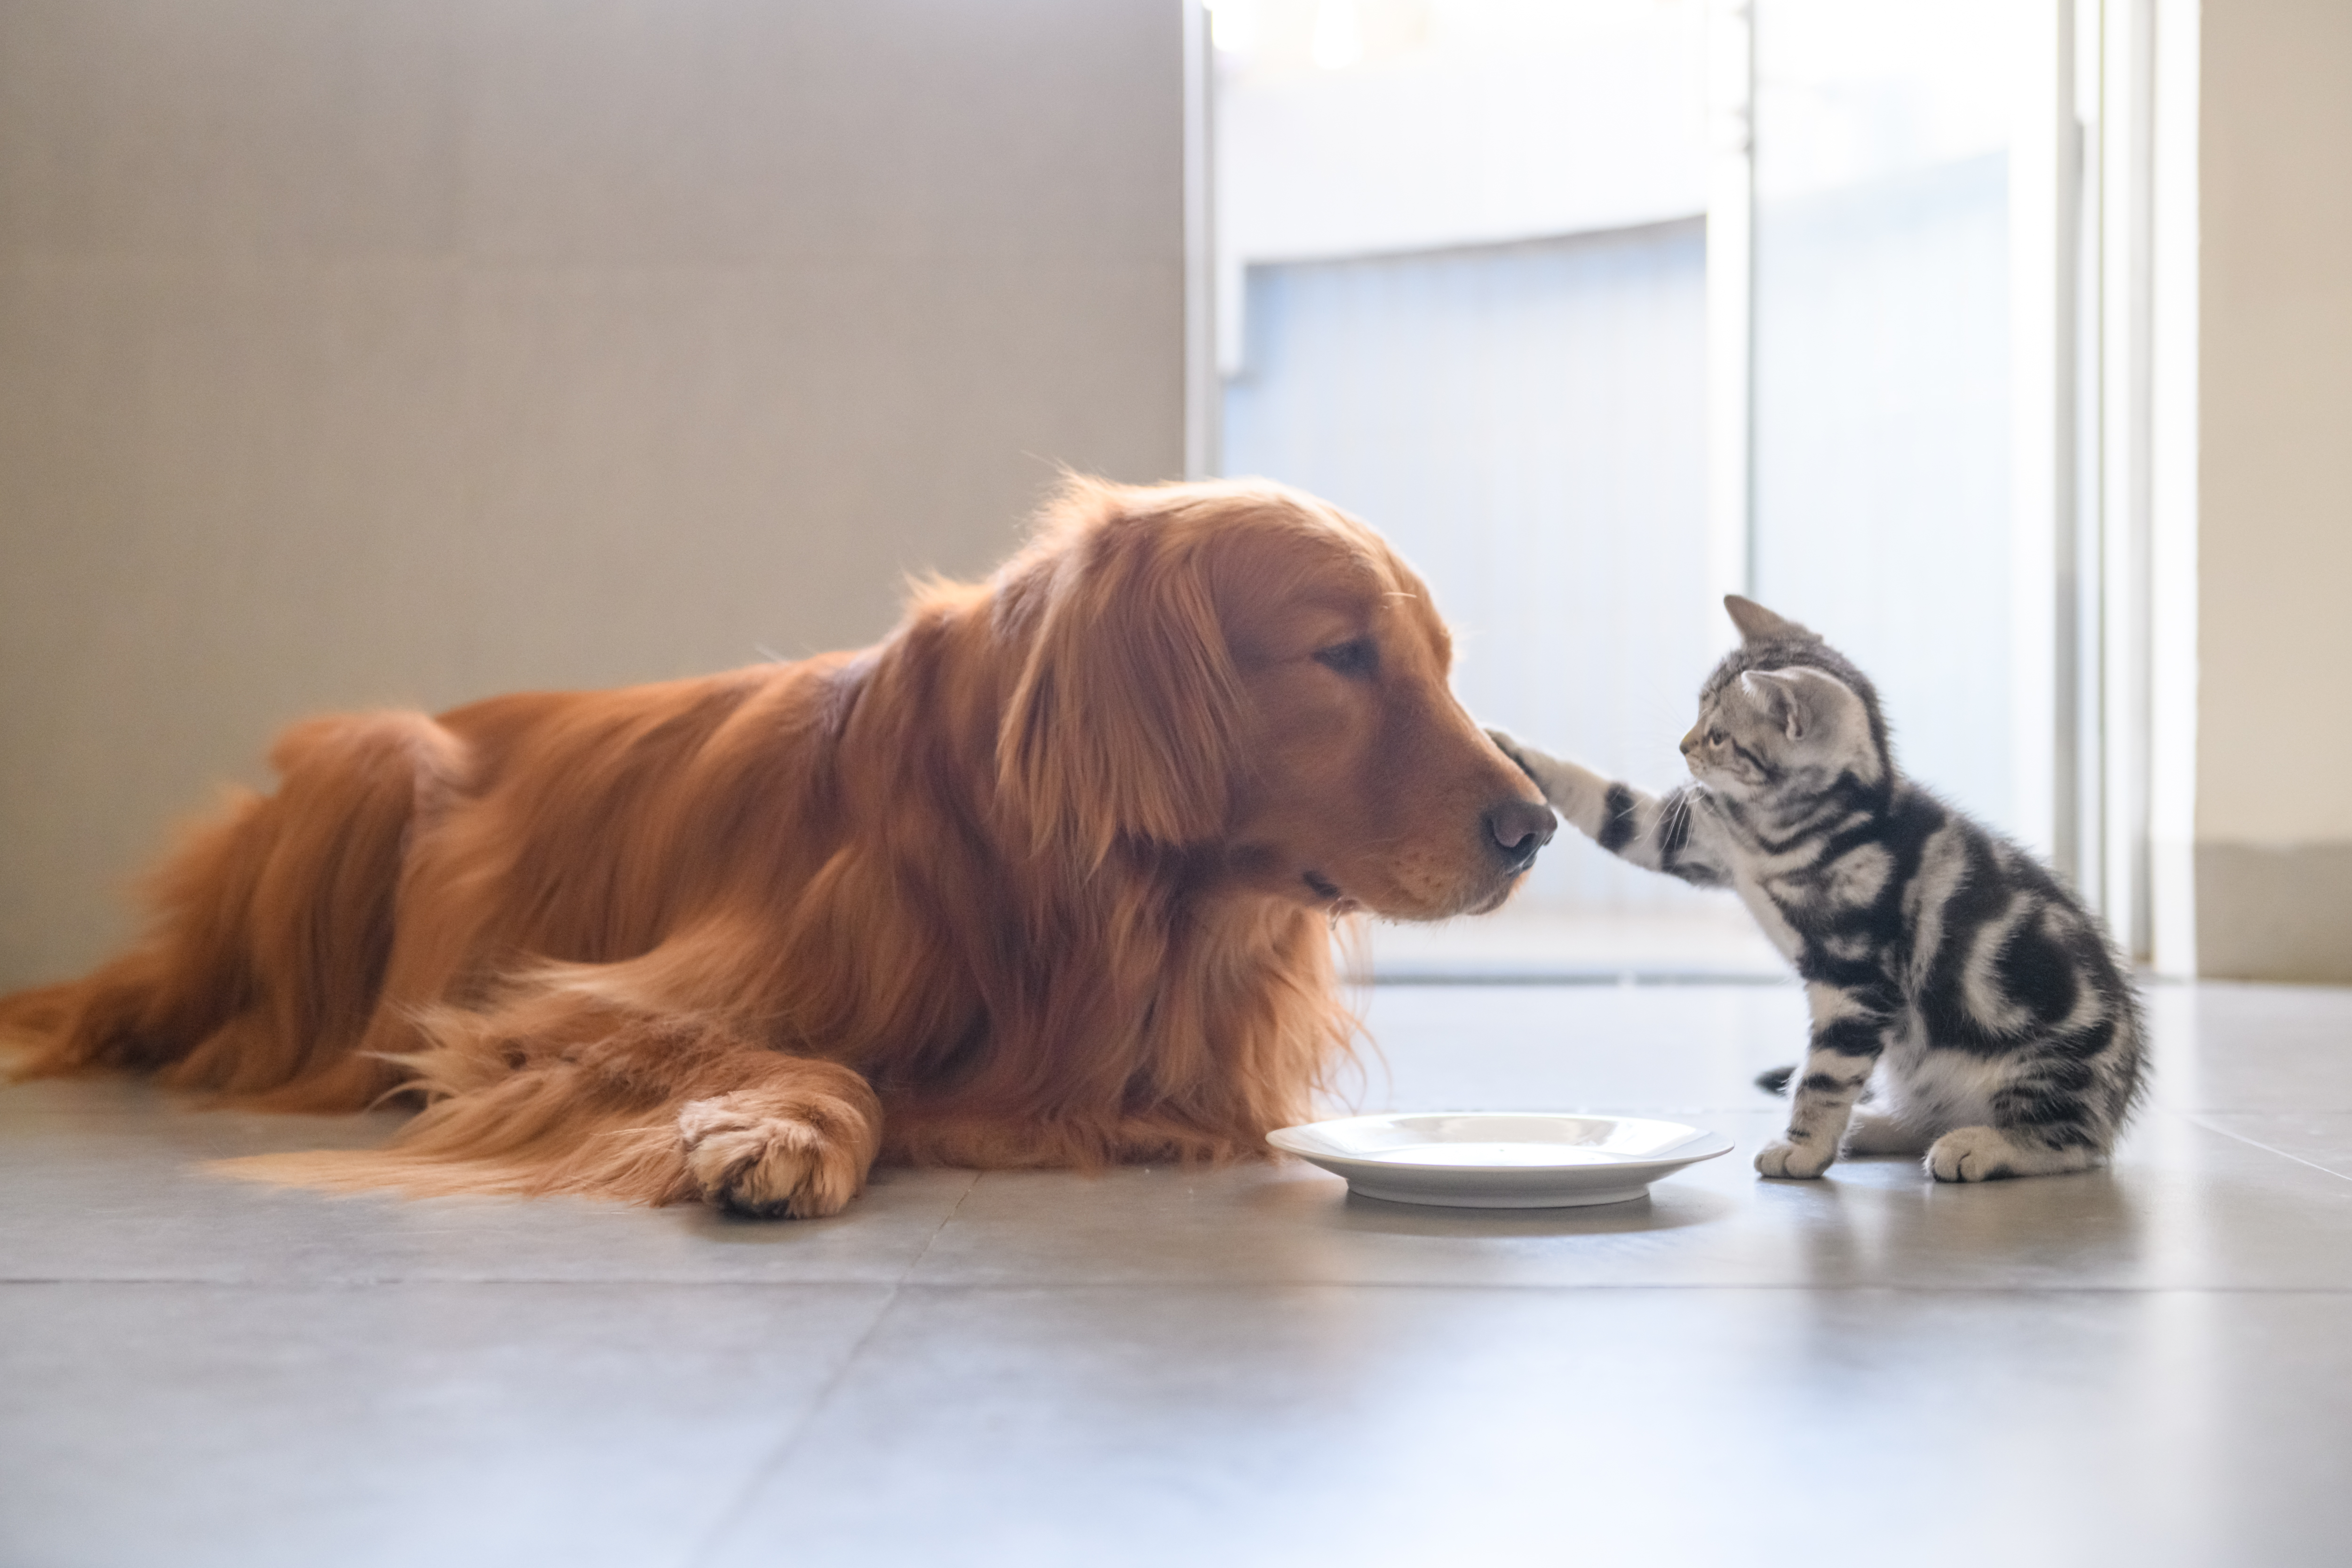 Dog and kitten photo- HOW PET FOOD MANUFACTURERS CAN INCREASE PRODUCTIVITY IN X6 STEPS